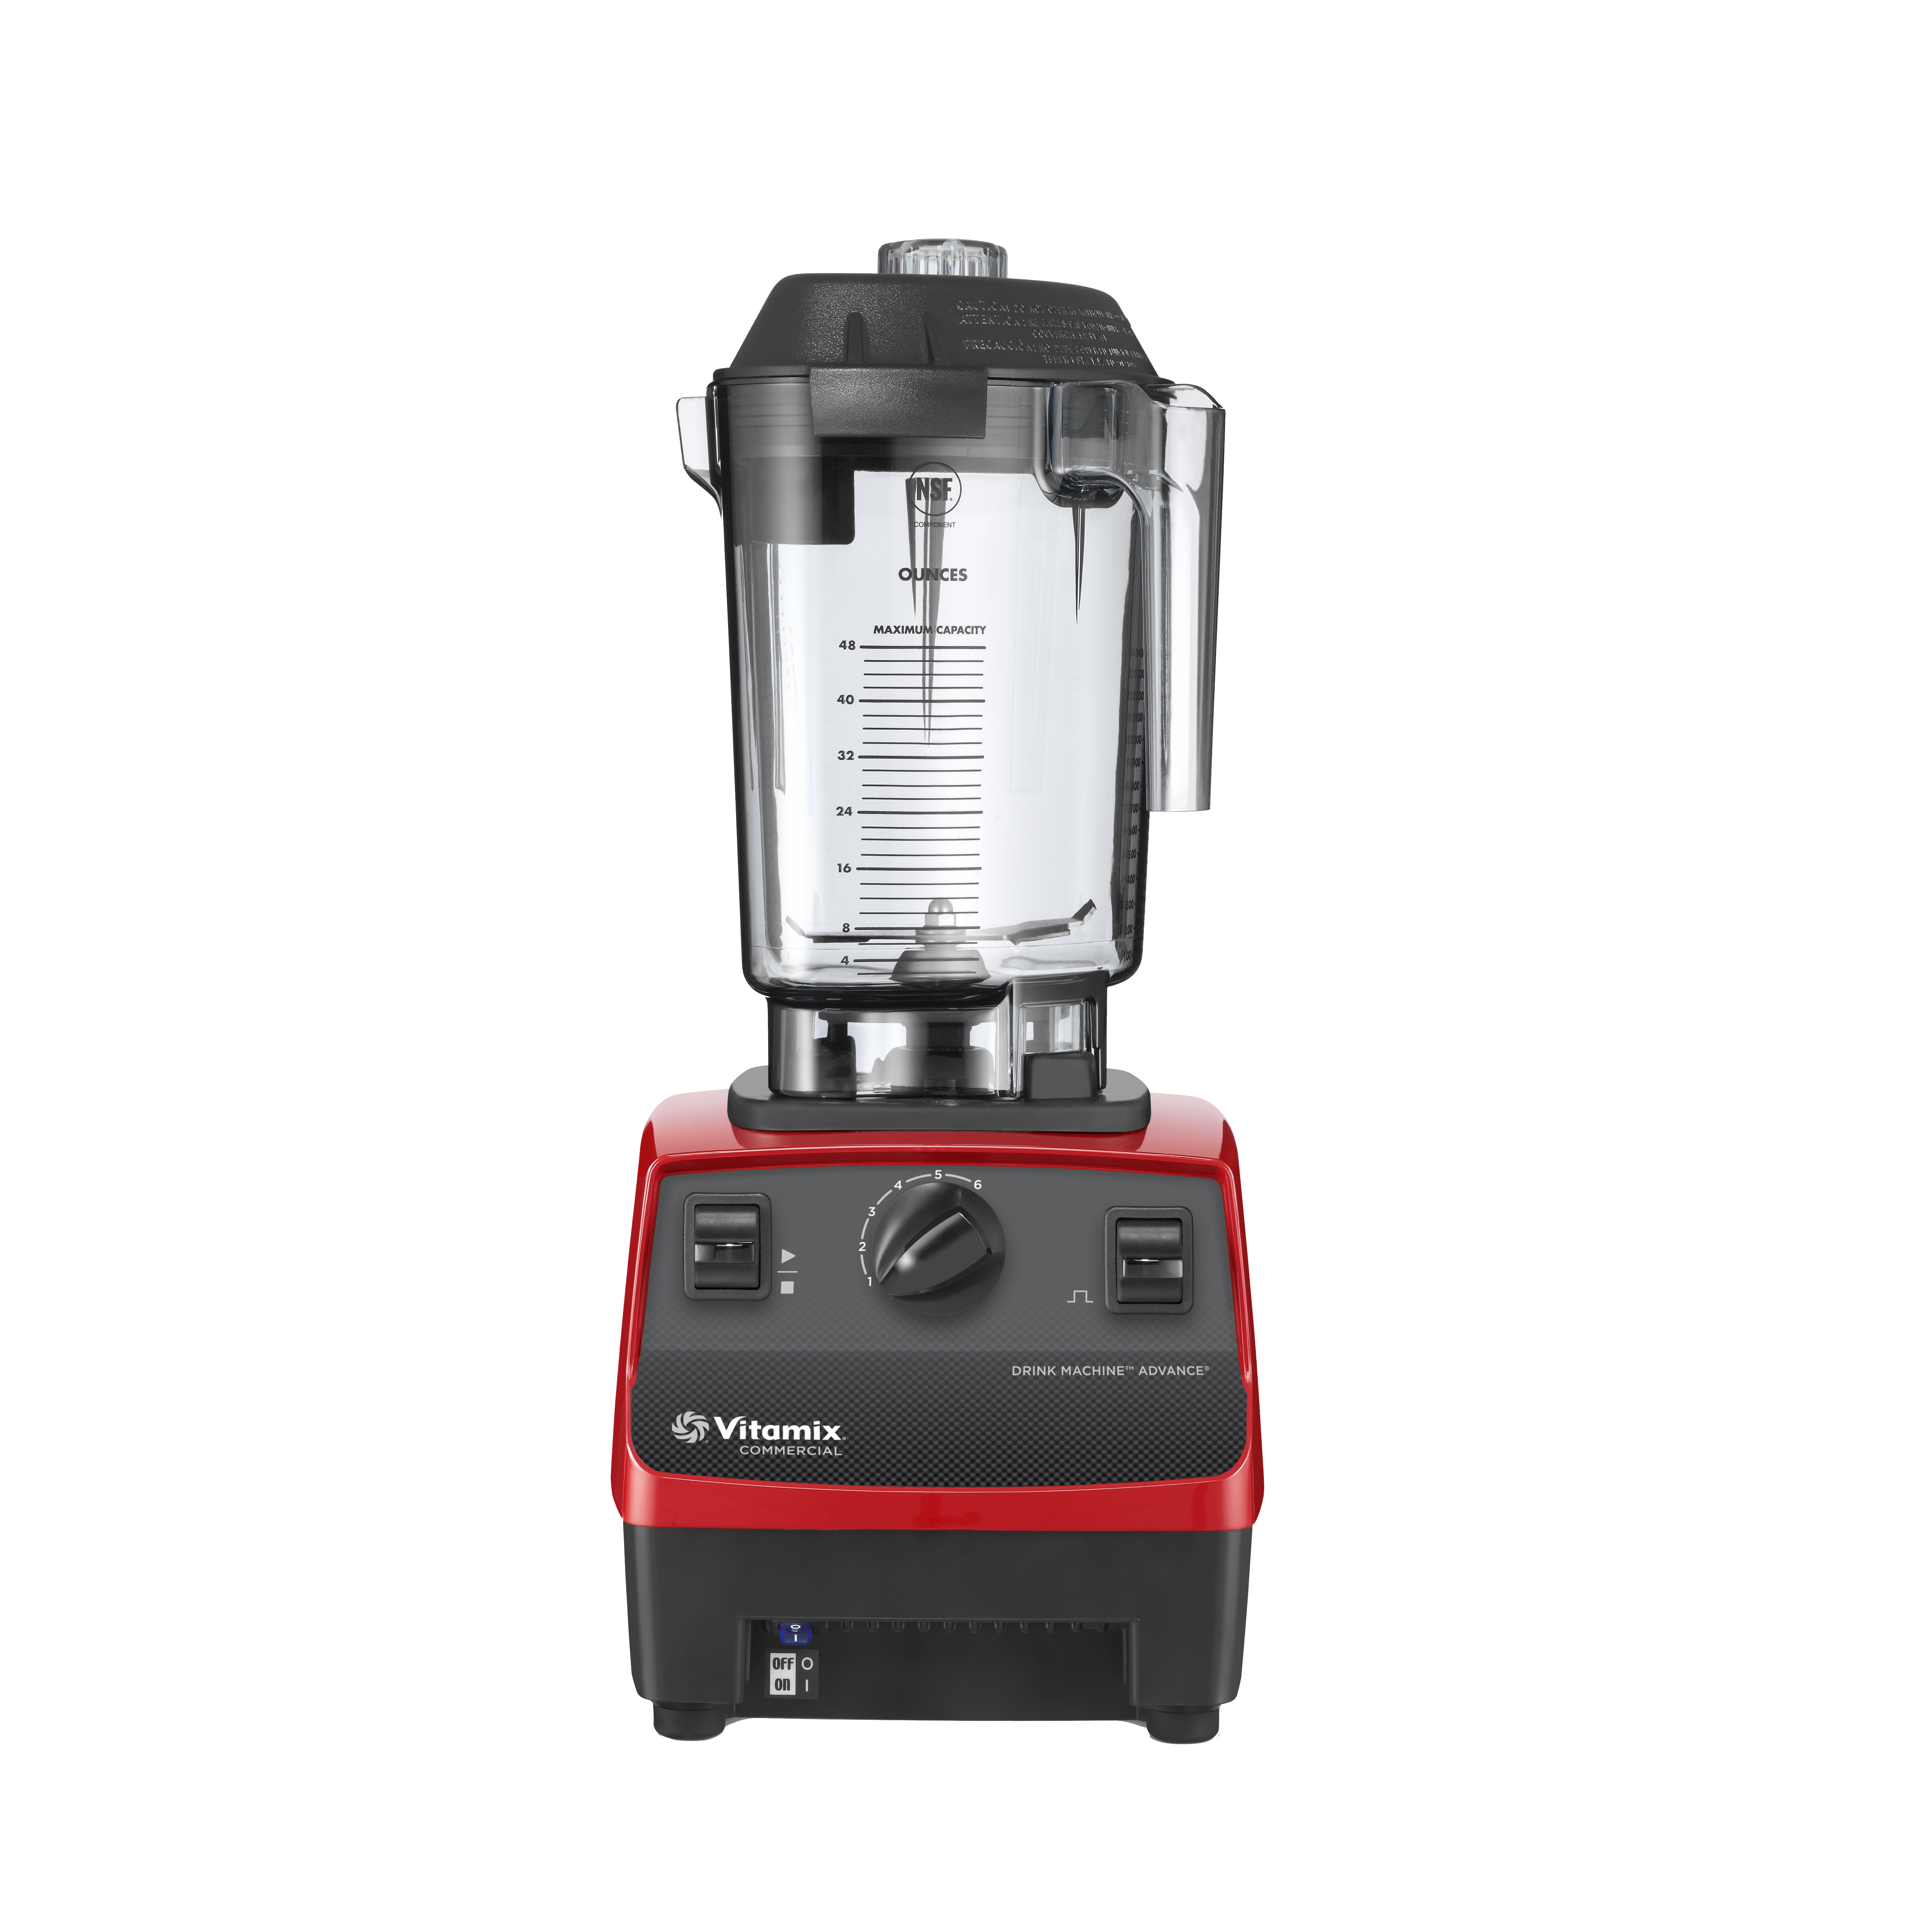 Vitamix 064345 blender, bar